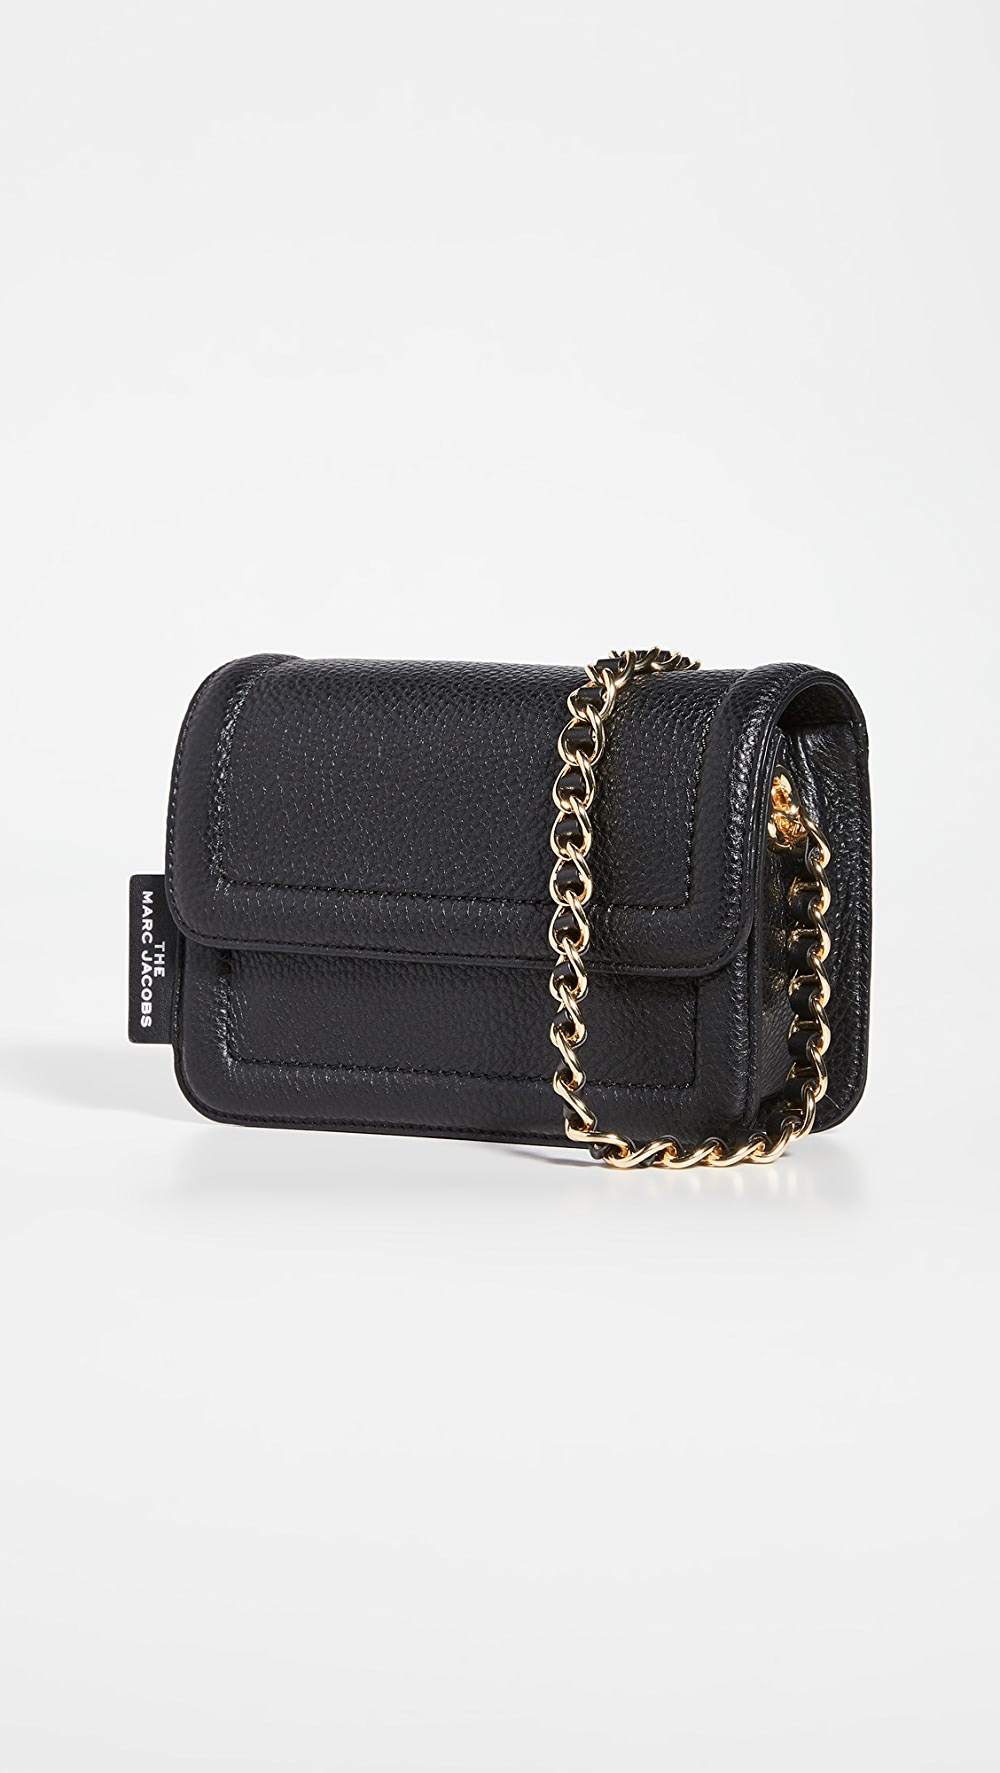 2019 New Style The Marc Jacobs - Mini Cushion Bag Firm In Structure